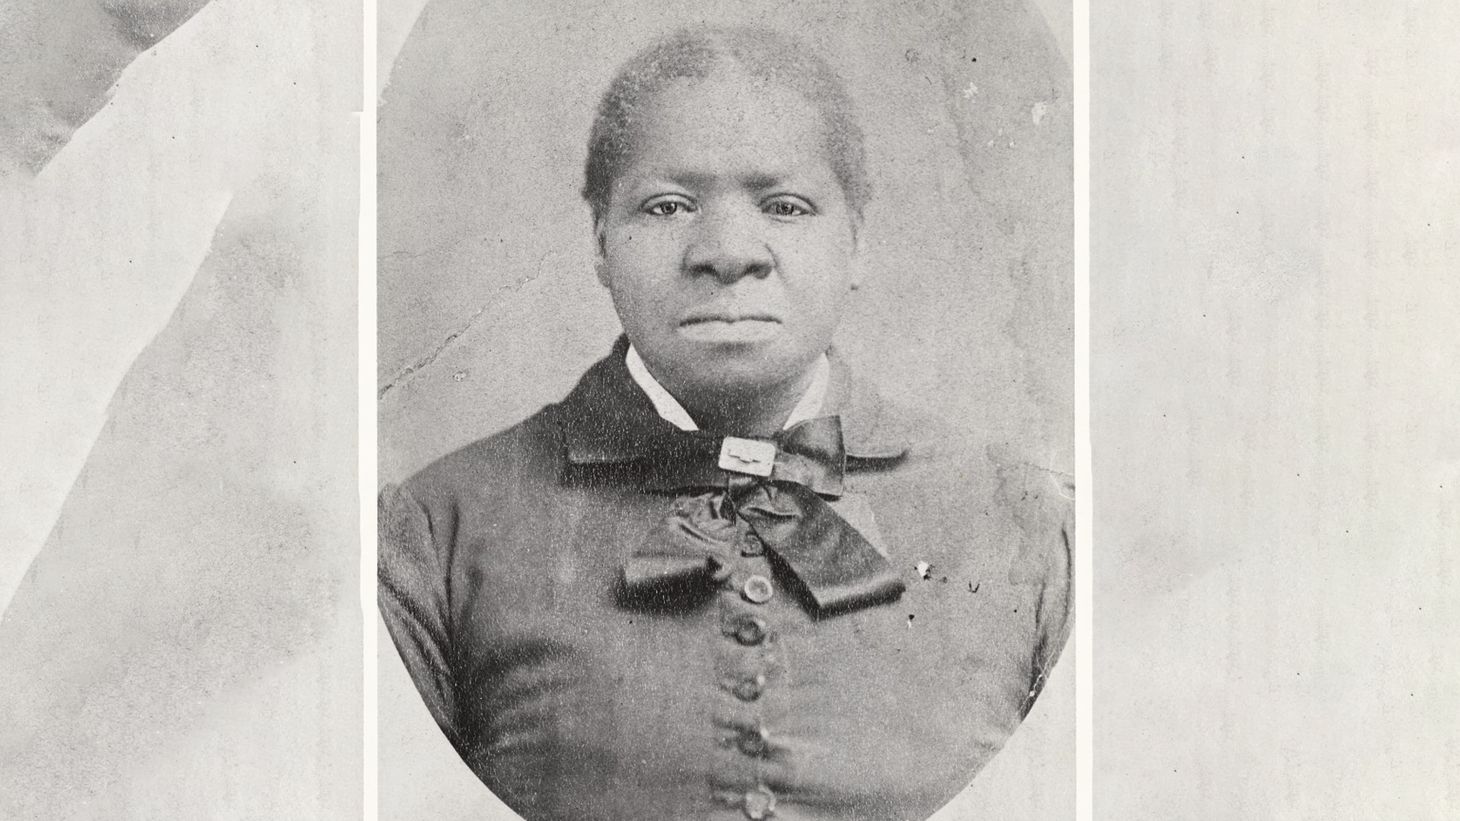 """This is the only known photographic portrait of Biddy Mason (1818-1891). """"This is a person who was born a slave, was able to create something wonderful and lasting in one of the greatest cities in the world. Her story needs to take up public space and public consciousness,"""" says Brenda Stevenson, a UCLA professor of history and African American Studies."""